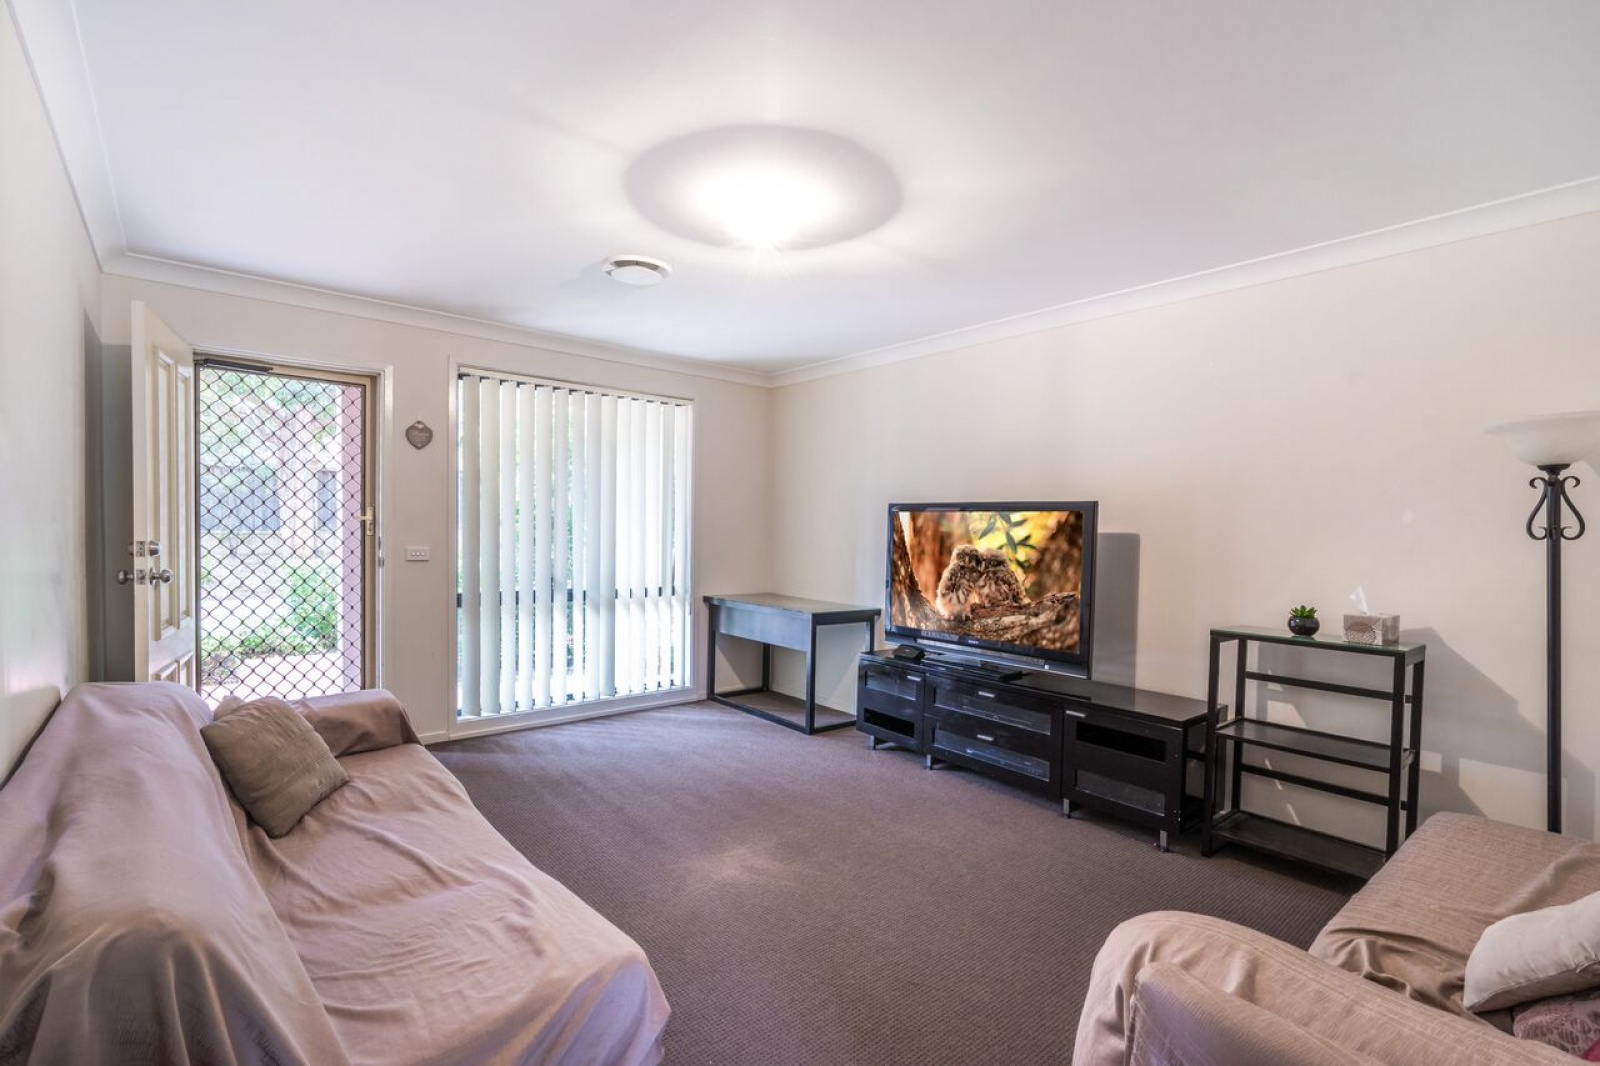 6/14 Benham Road,Minto,NSW,4 Bedrooms Bedrooms,2 BathroomsBathrooms,Townhouse,Benham Road,1297